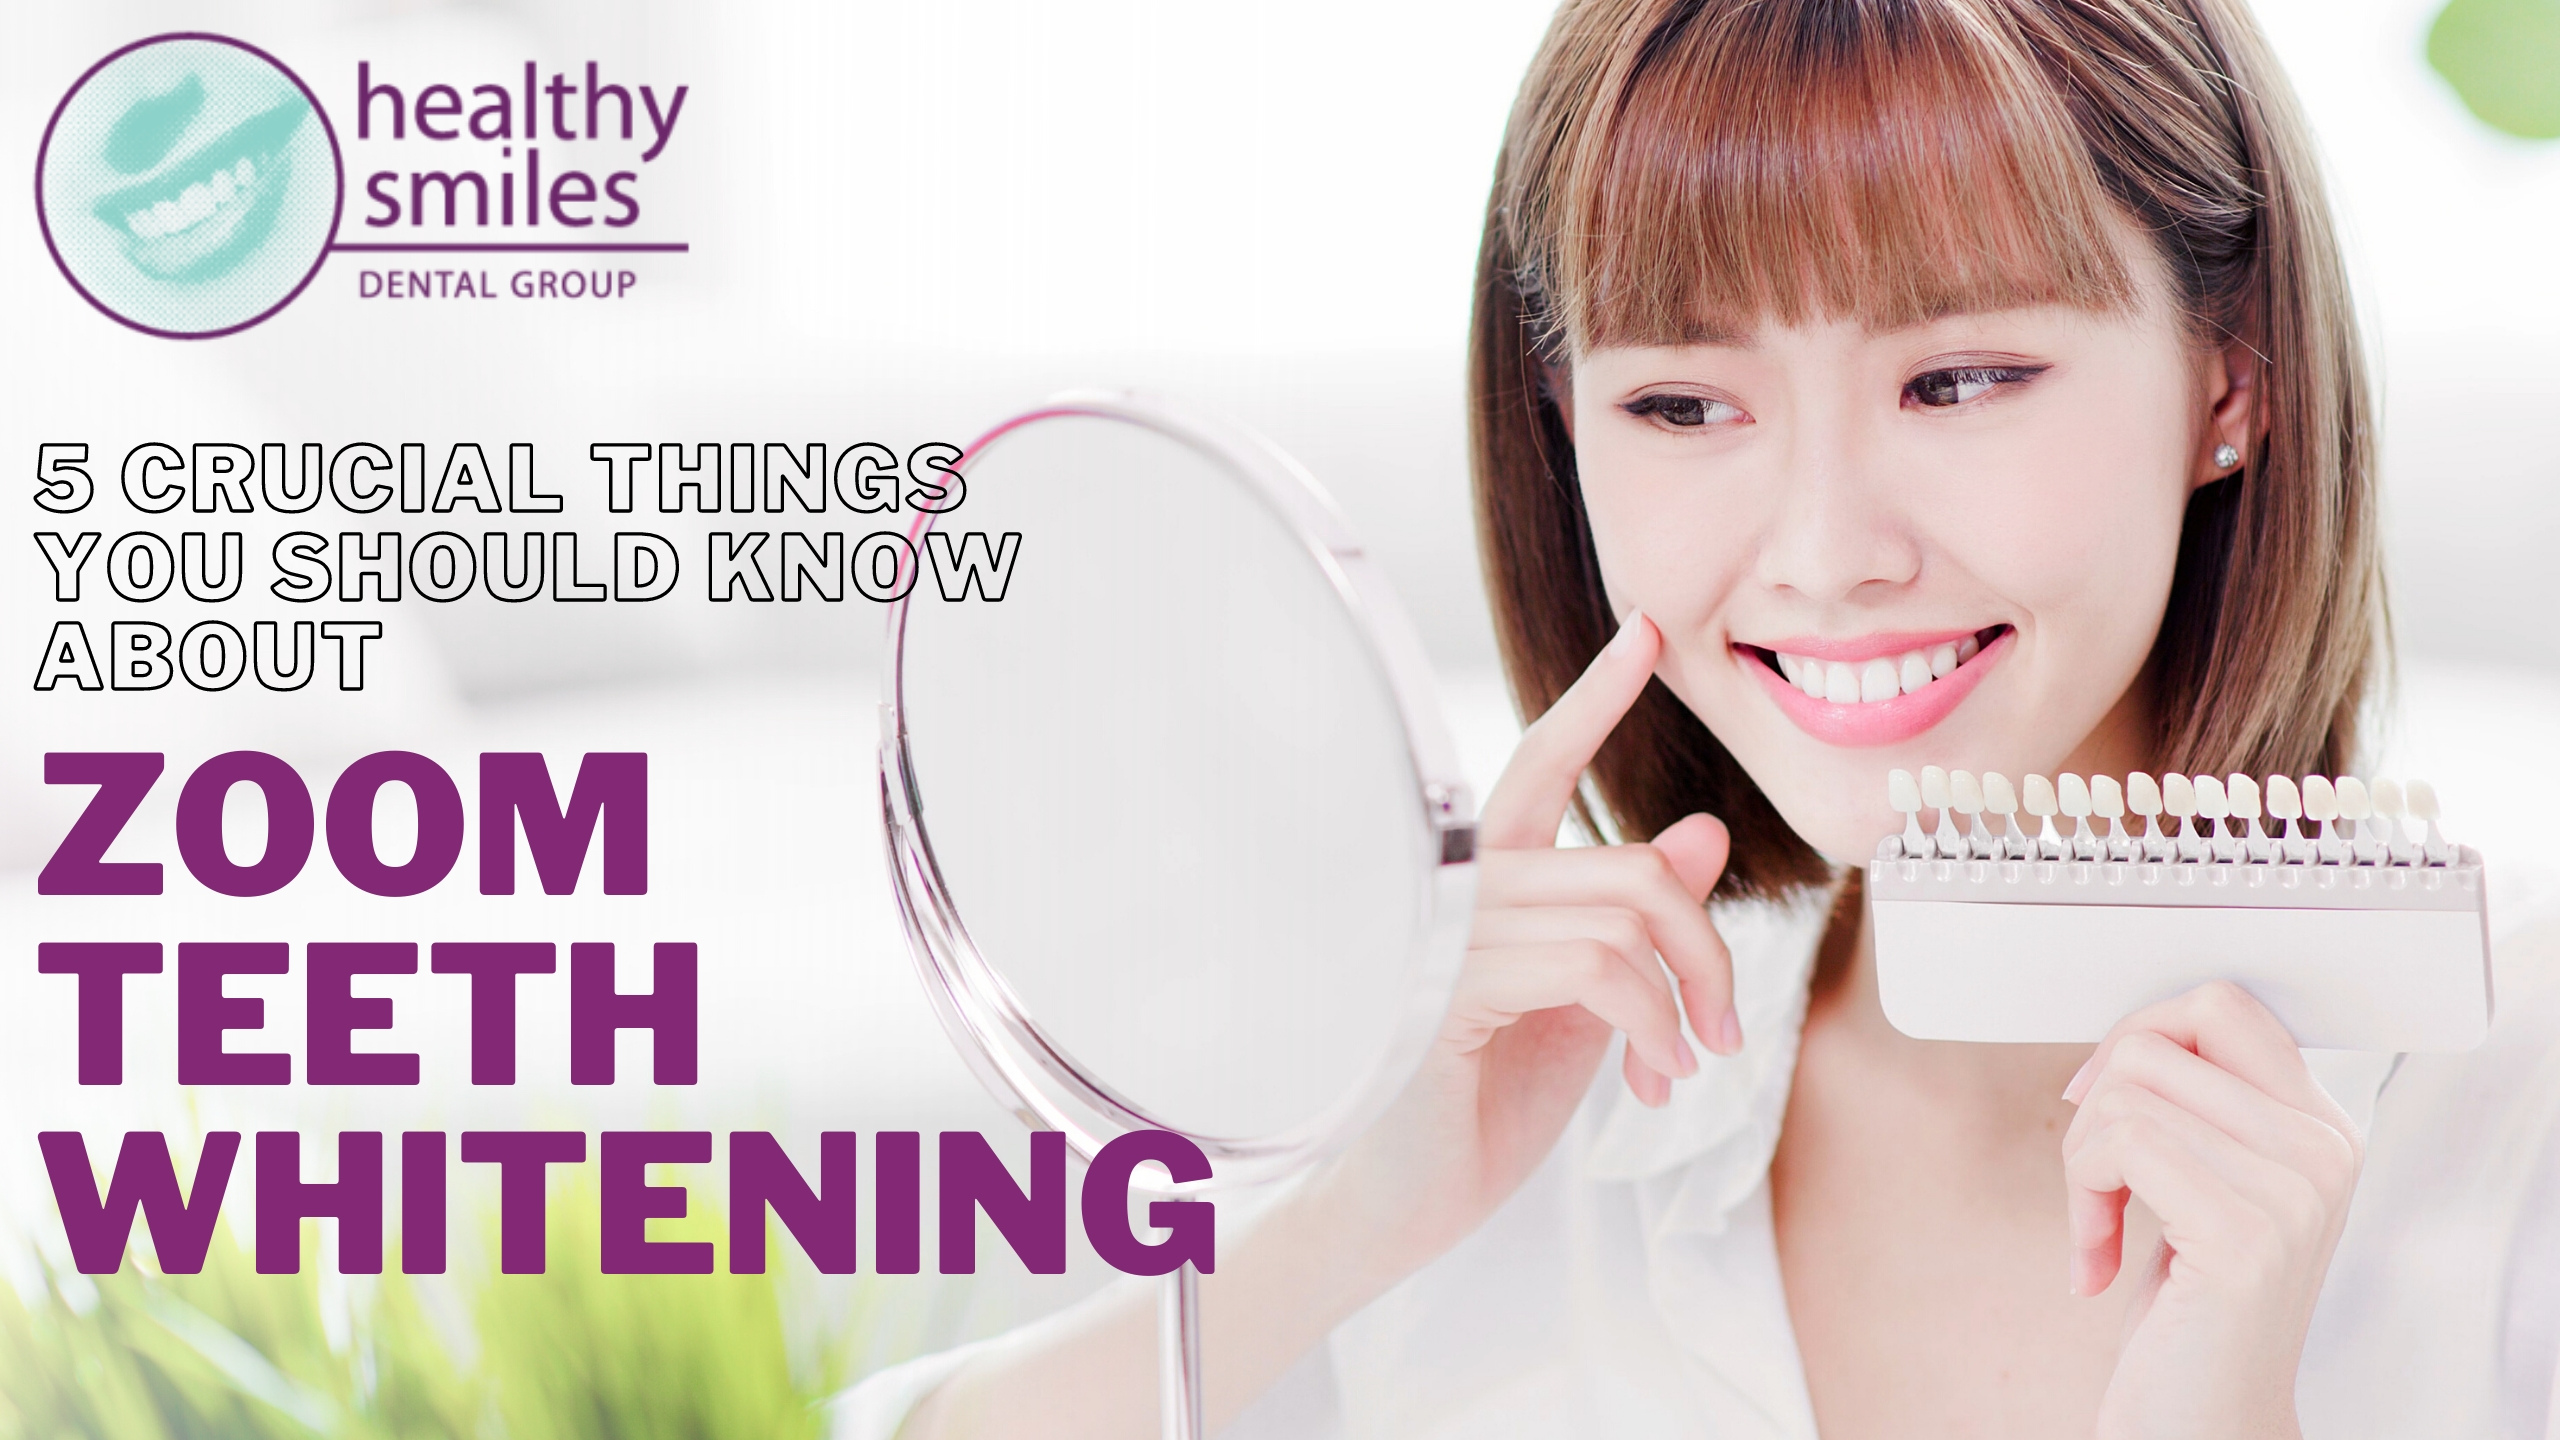 5 Crucial Things You Should Know About Zoom Teeth Whitening